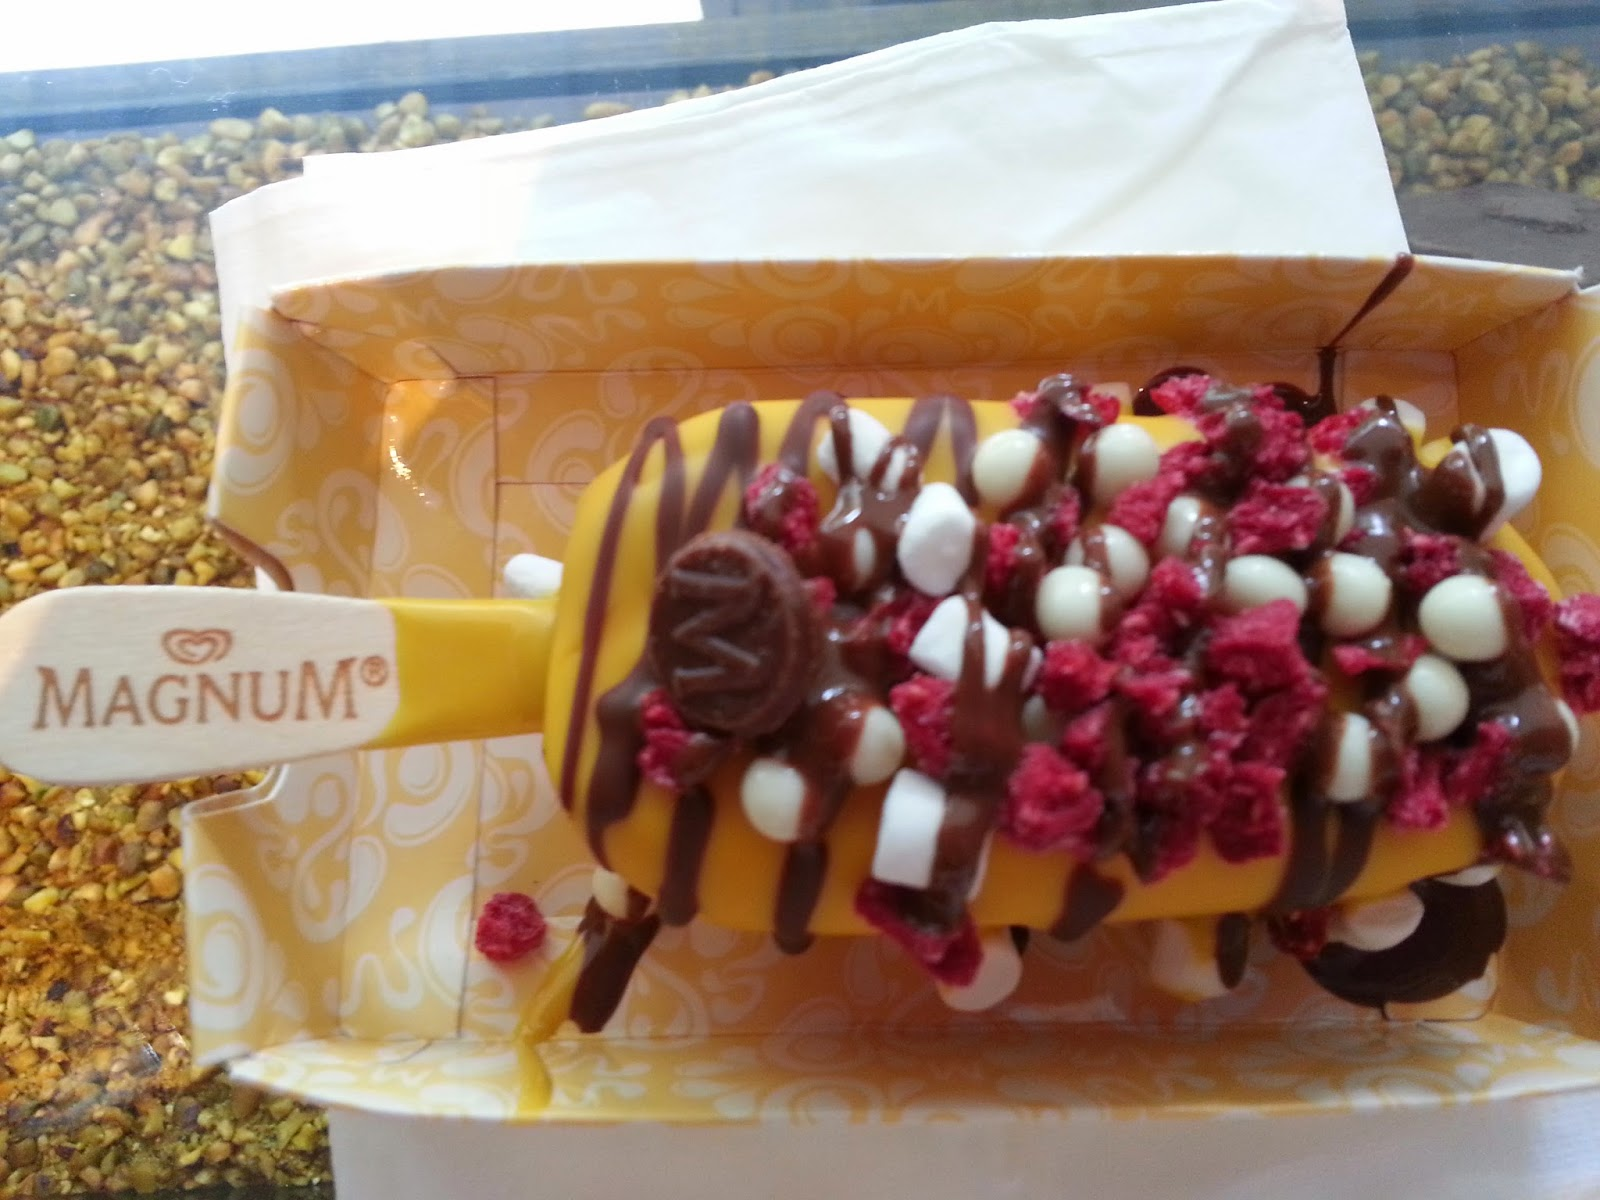 Country gourmet traveler magnum yourself manila has its own magnum ice cream shop where you can make your own magnum this is soooo cool an individual magnum there are shops as well in hamburg solutioingenieria Image collections